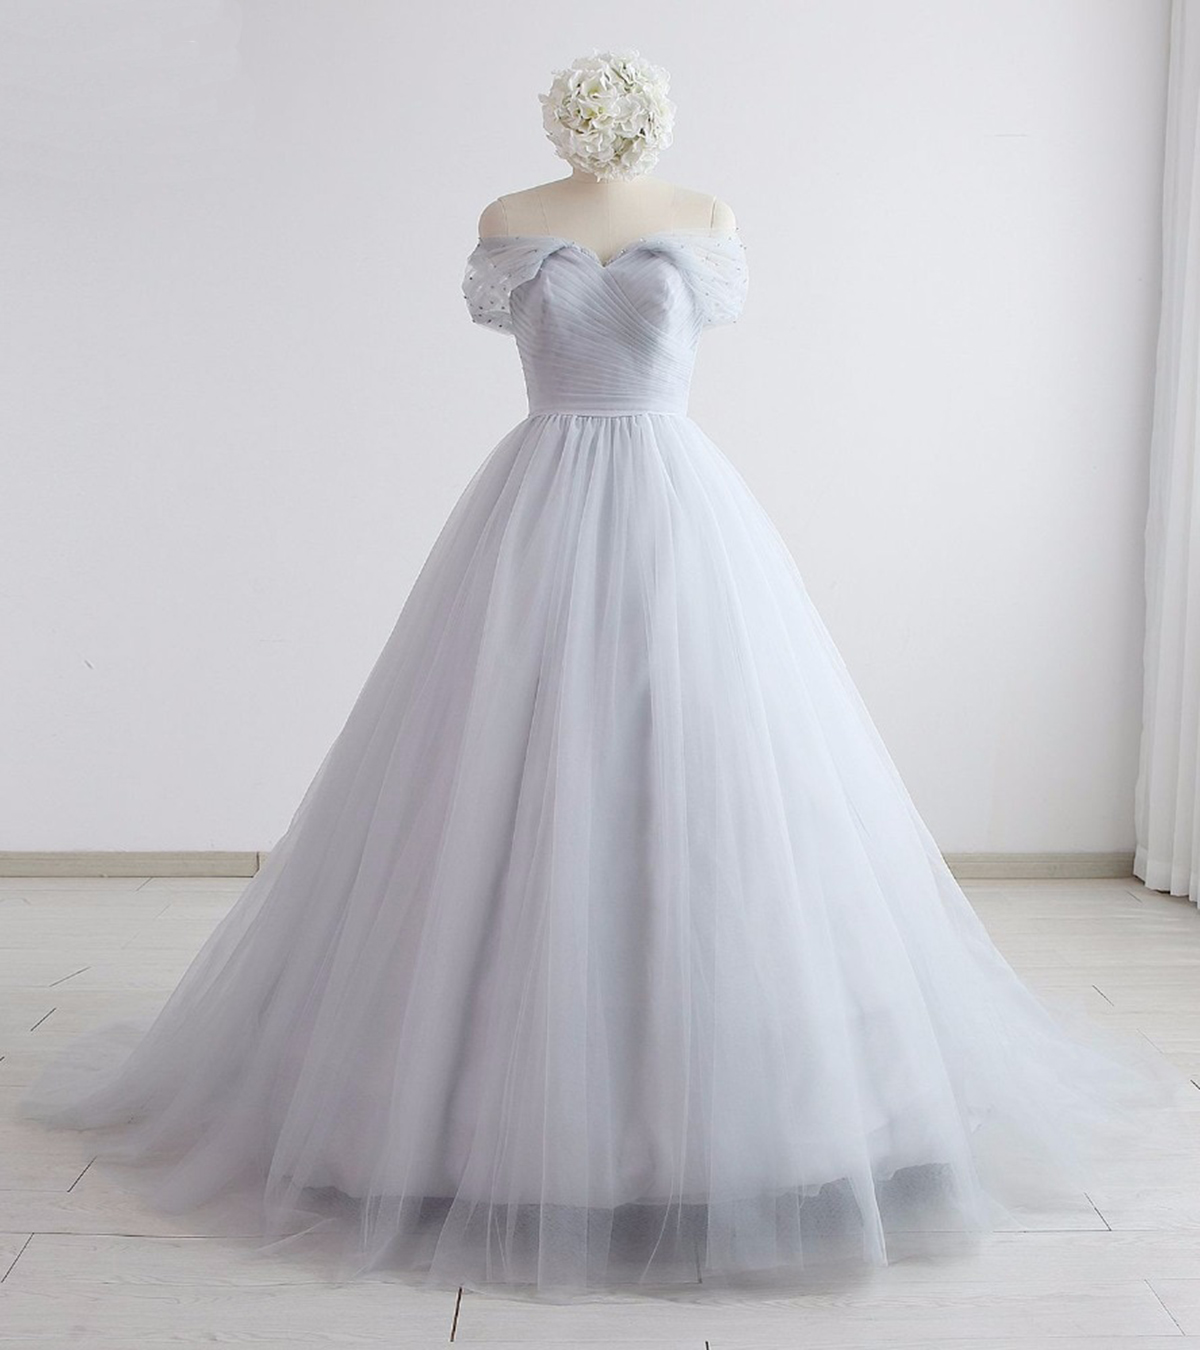 Image of 2019 Gray Tulle Off Shoulder Long Sweet 16 Prom Dress, Evening Dress